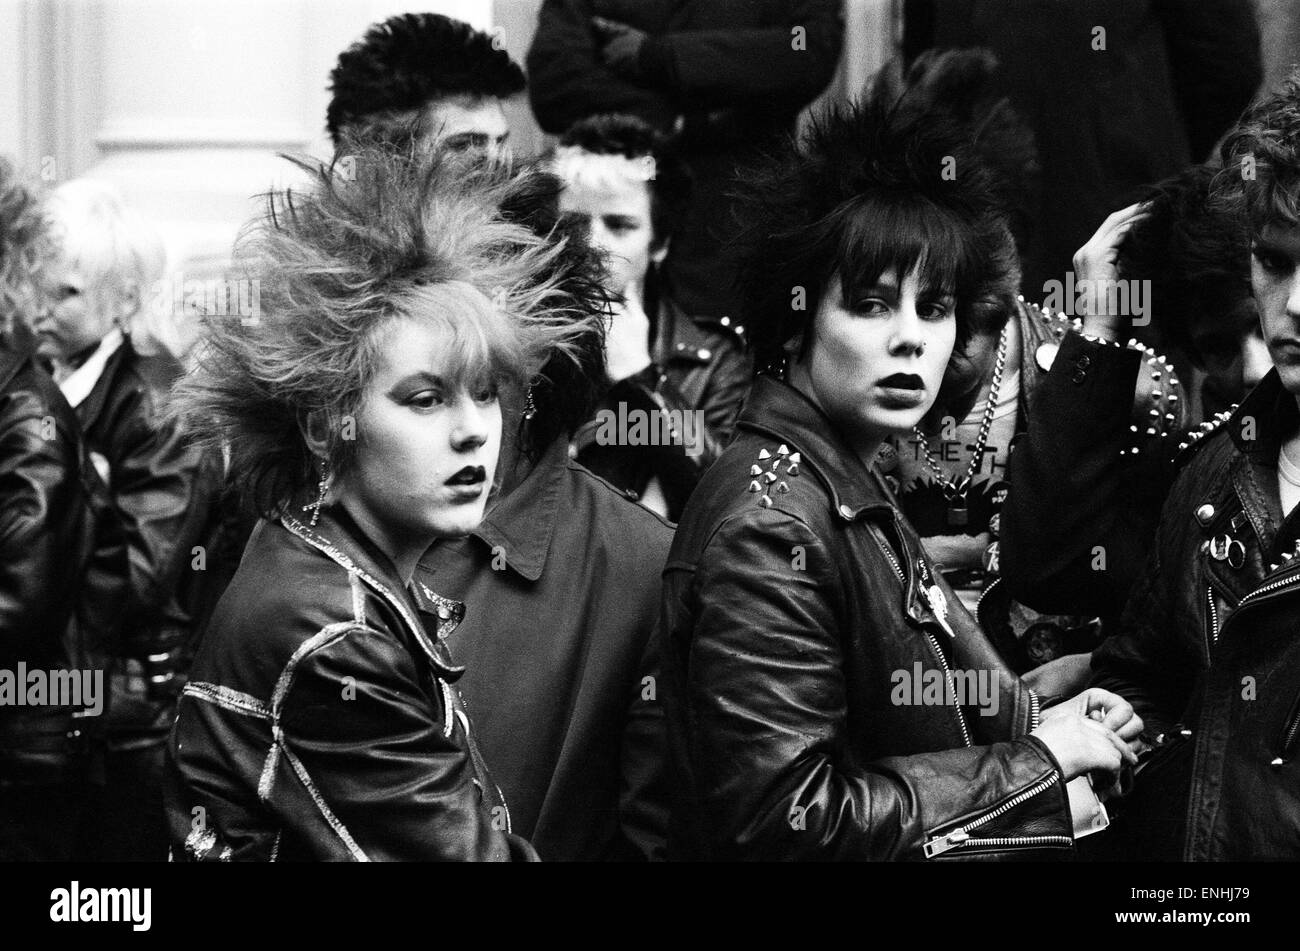 Punk Rockers March In London 3rd February 1980 Stock